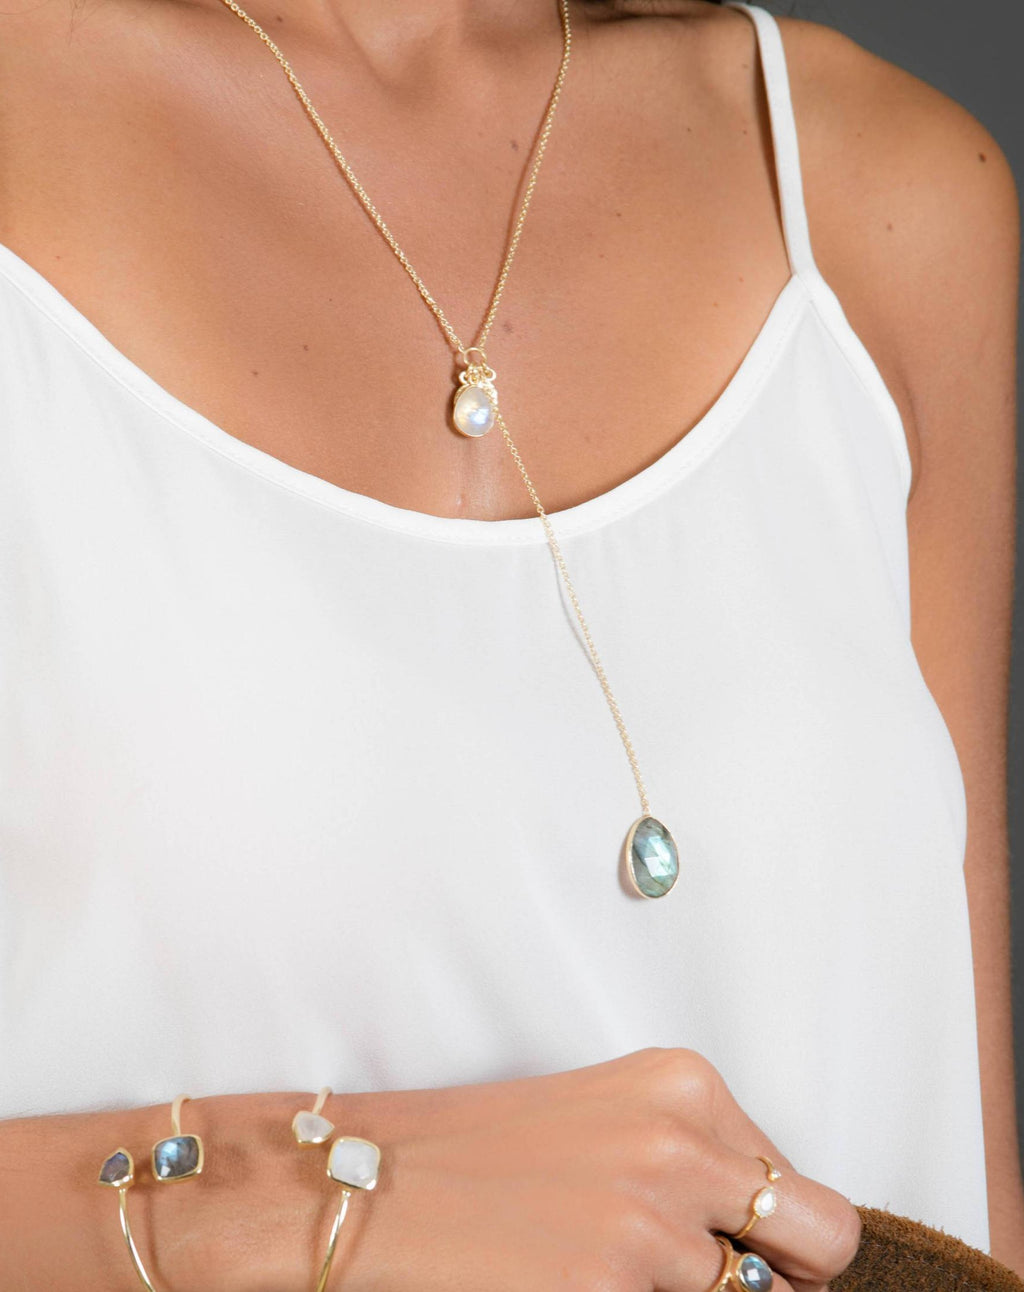 Tammy Y Necklace * Labradorite and Aqua Chalcedony * Gold Plated 18K * BJN023